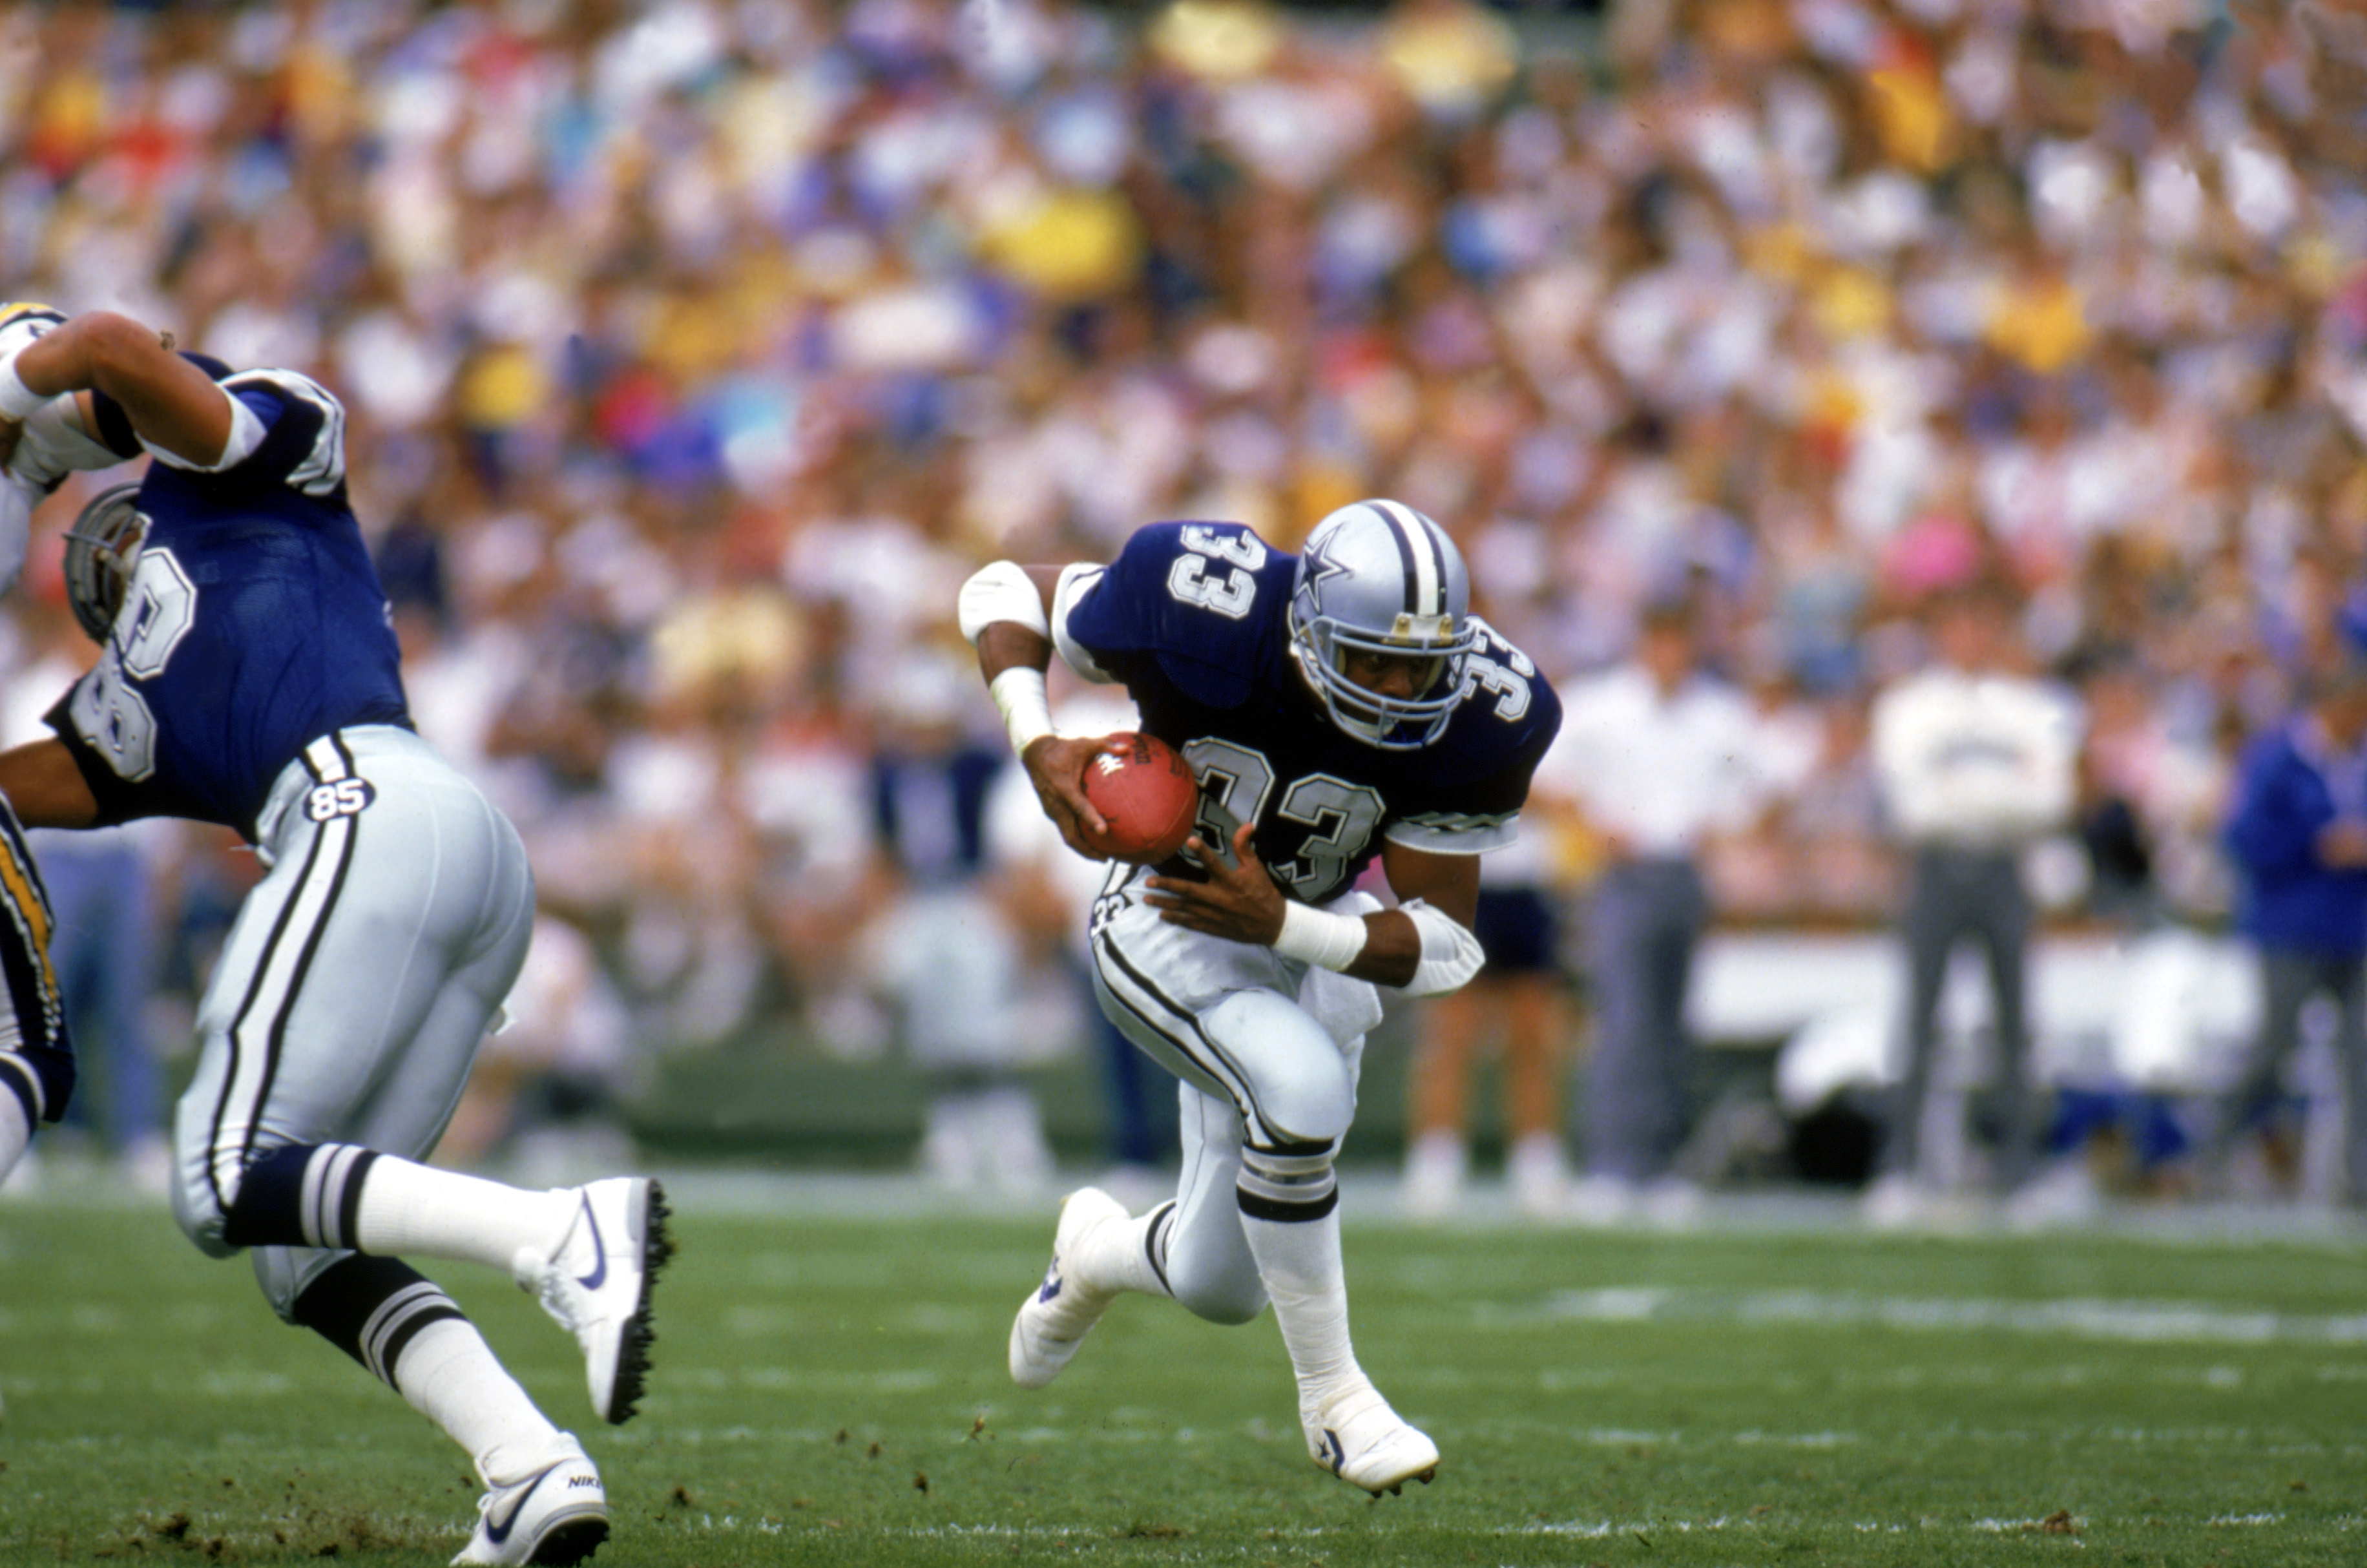 SAN DIEGO, CA - 1986:  Running back Tony Dorsett #33 of the Dallas Cowboys runs the ball during a game against the San Diego Chargers at Jack Murphy Stadium during the 1986 NFL season in San Diego, California.  (Photo by Rick Stewart/Getty Images)